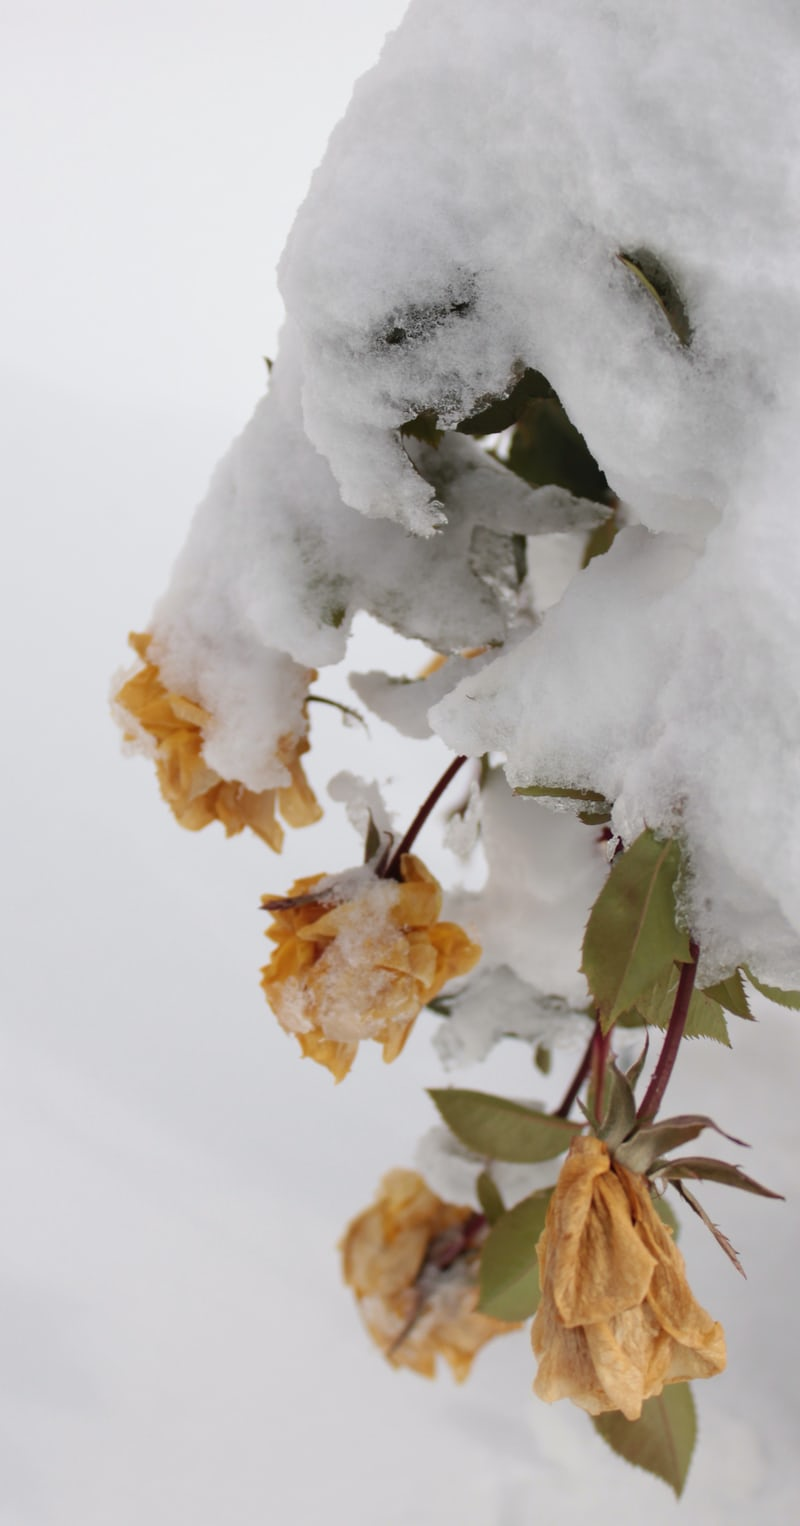 roses covered in ice